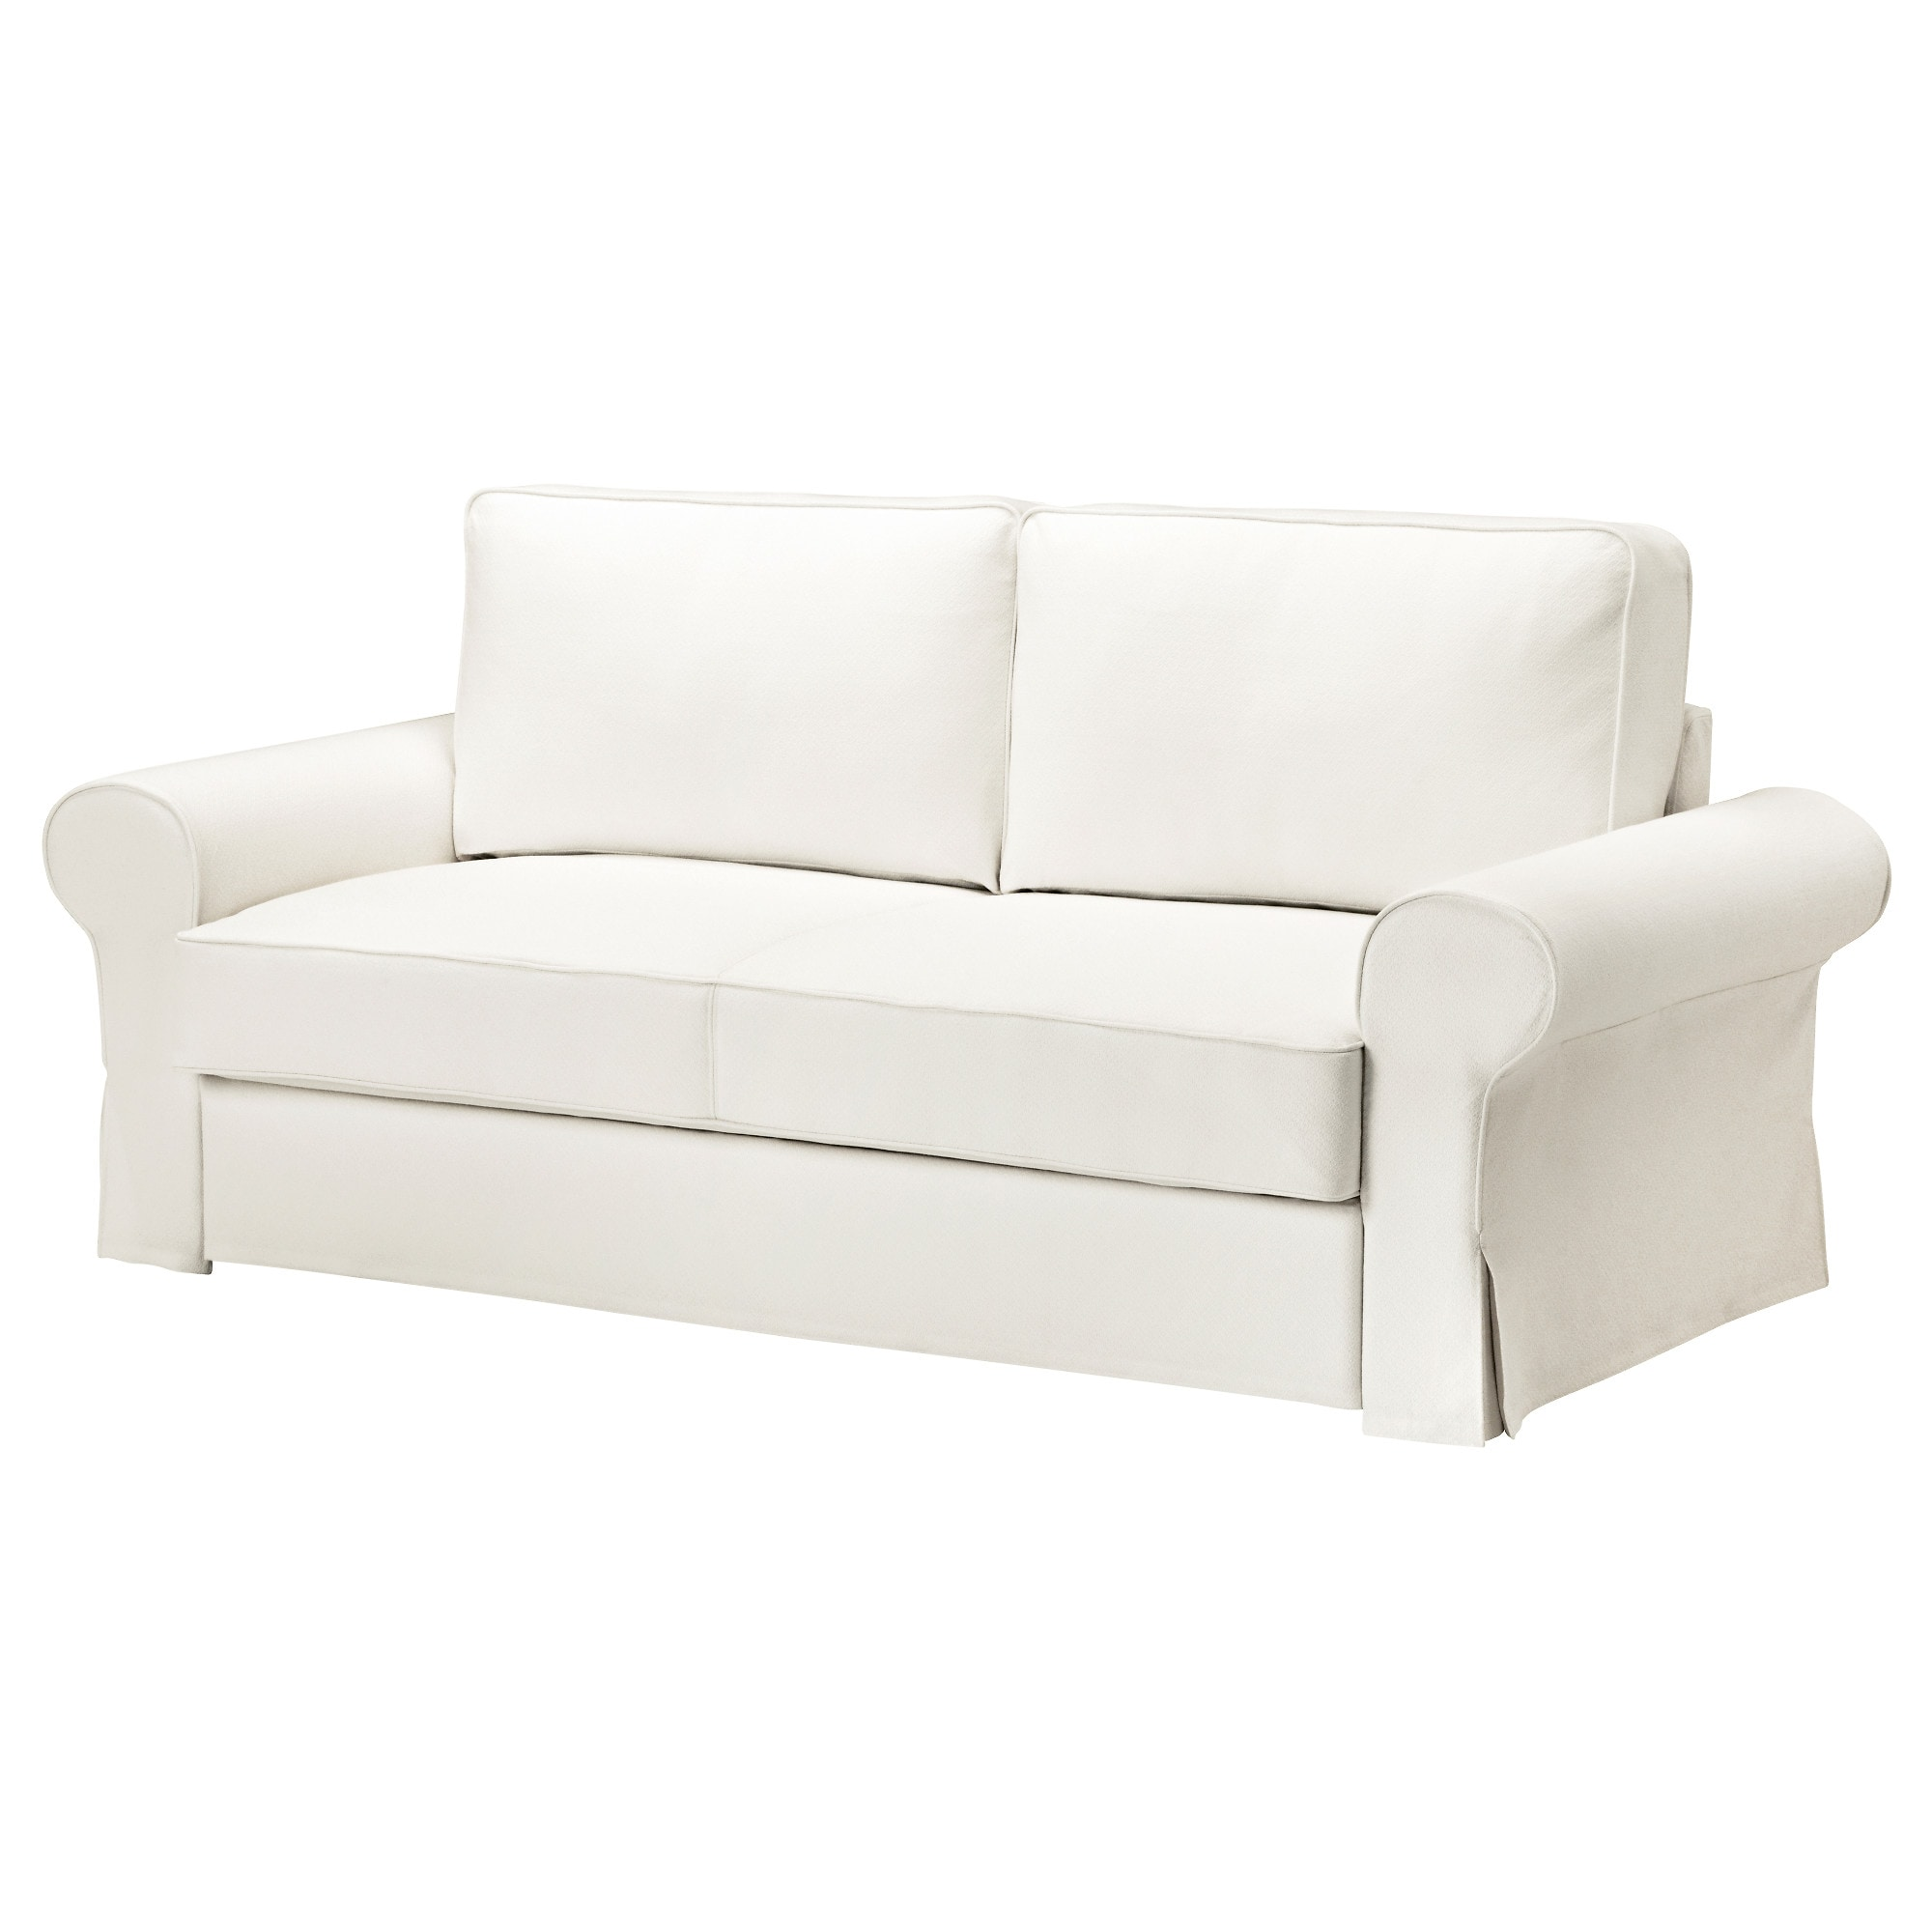 Banquette convertible ikea for Ausziehbare couch